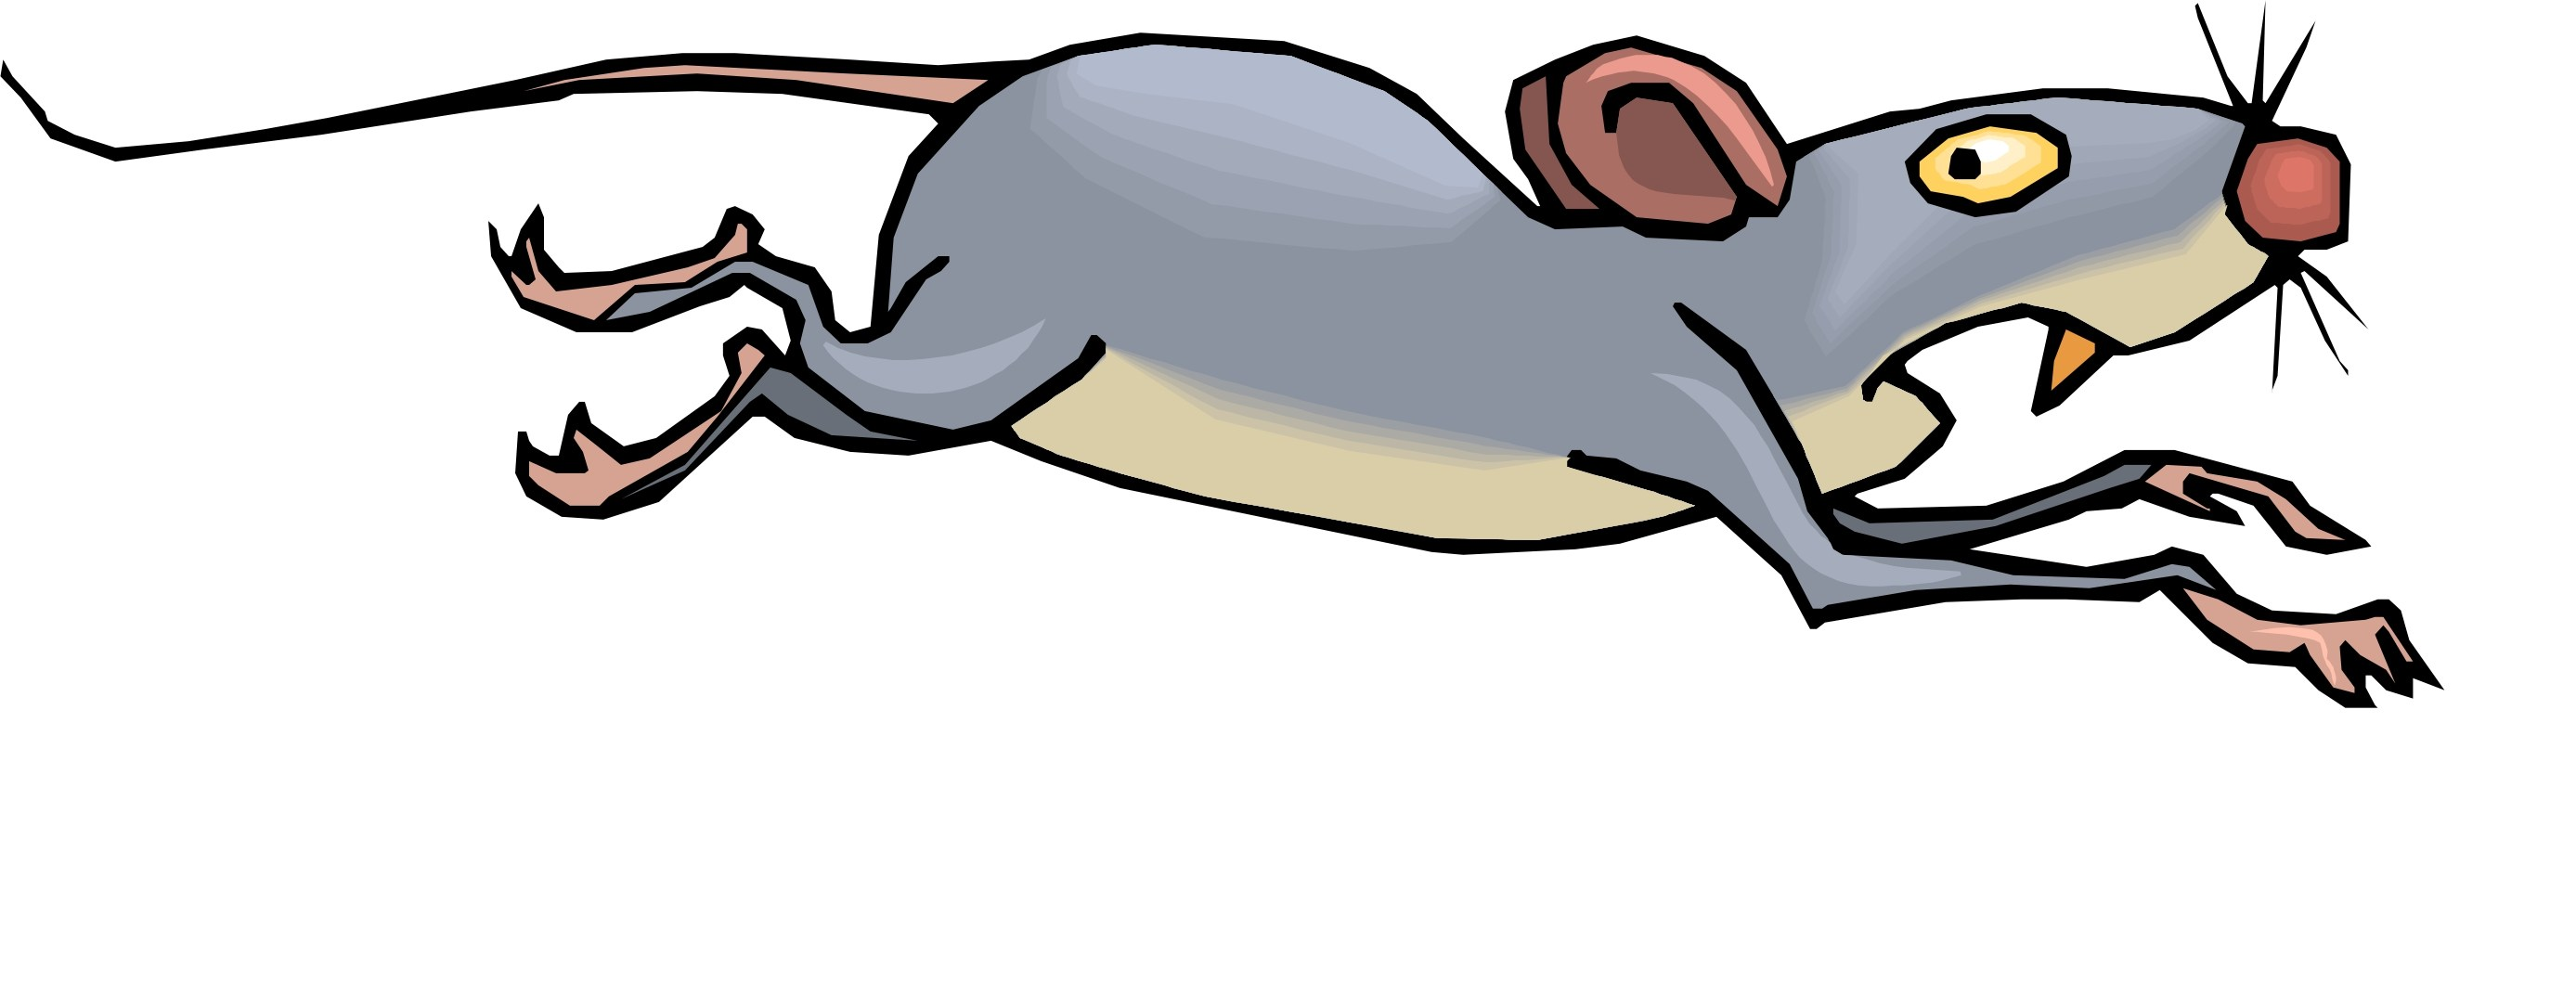 Mouse clipart noisy.